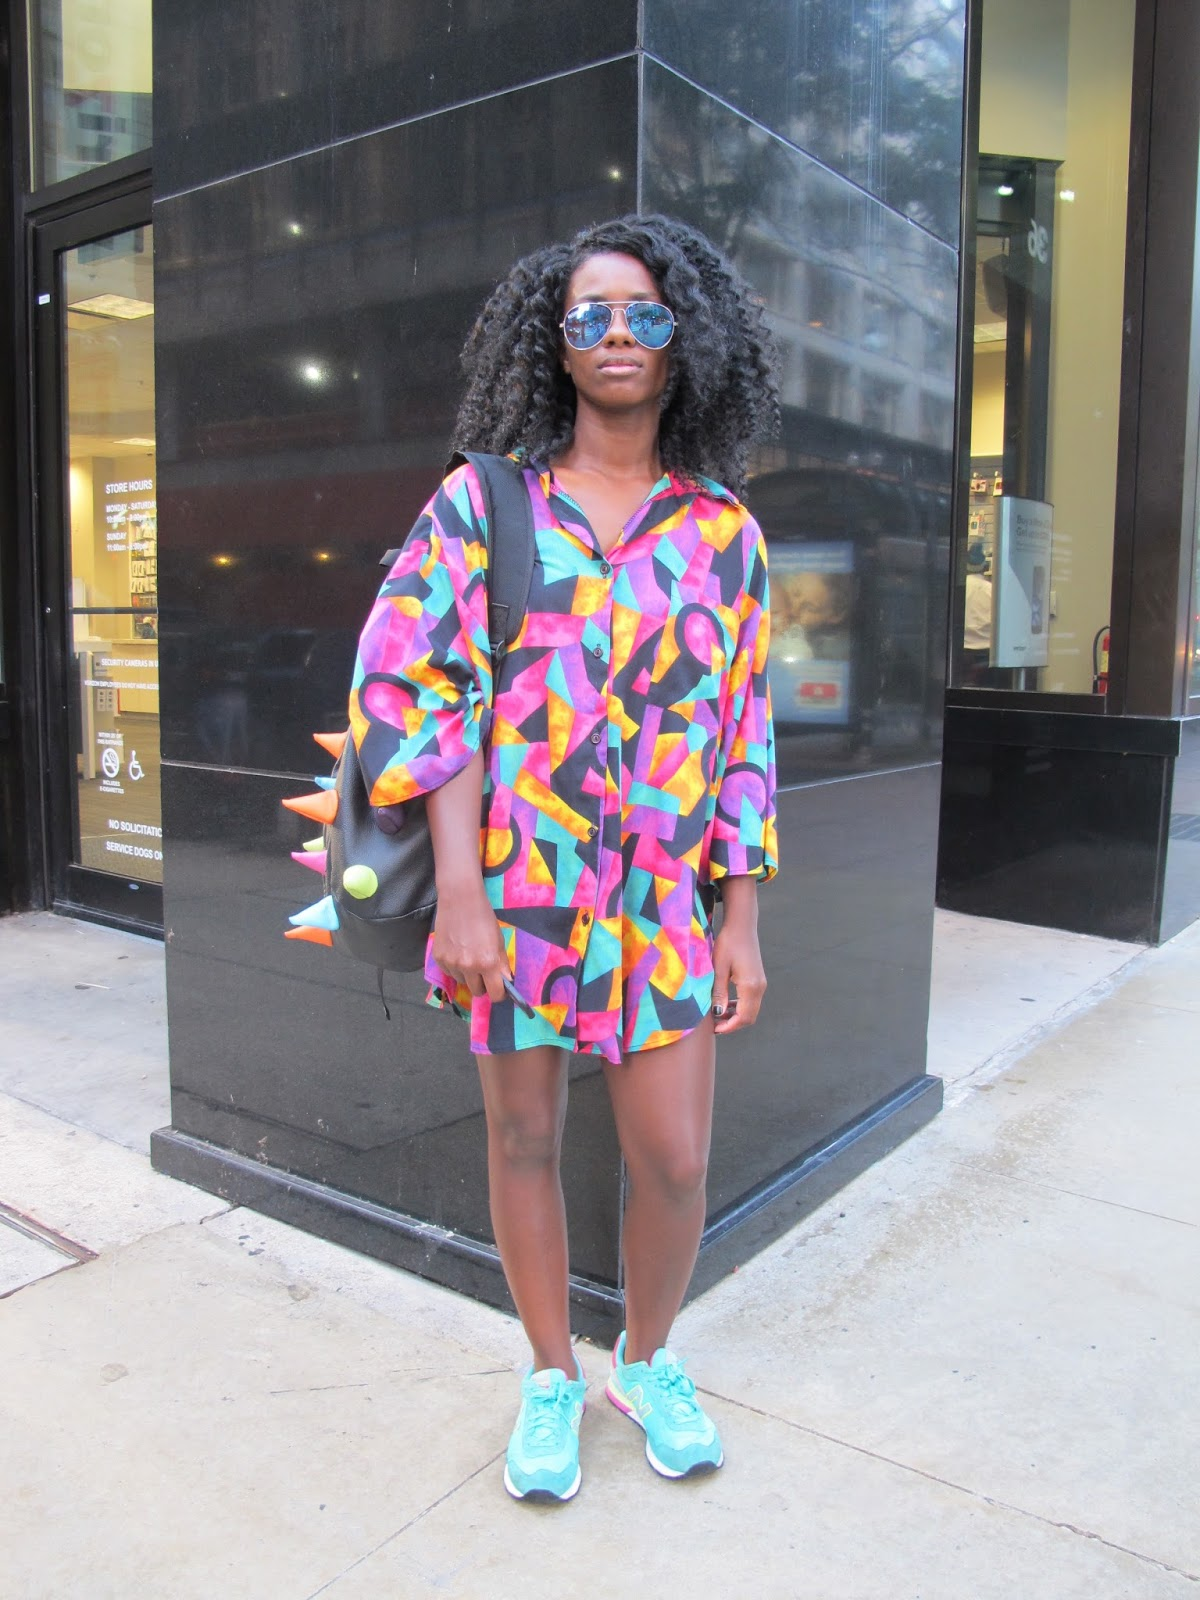 Jasmine Chicago Looks A Chicago Street Style Fashion Blog